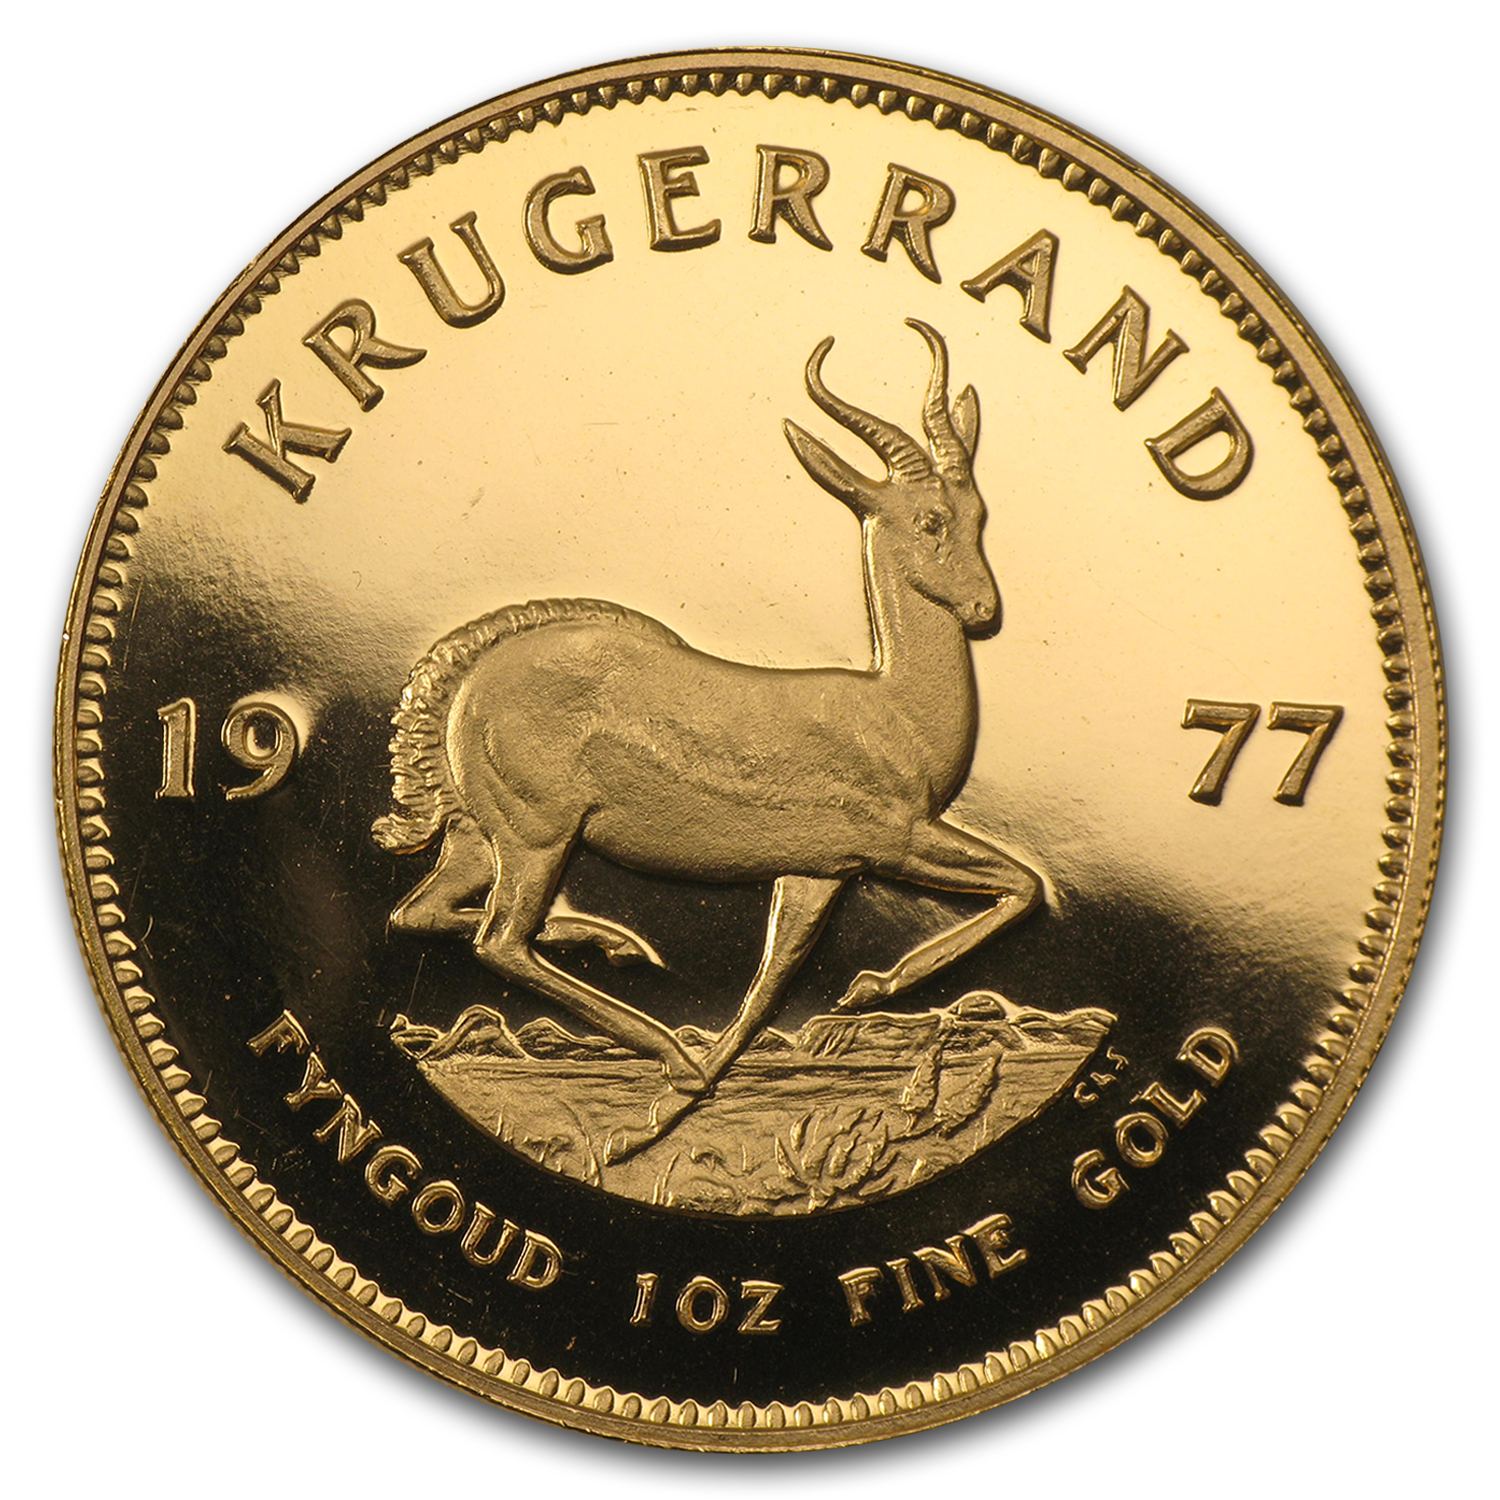 1977 1 oz Gold South African Krugerrand (Proof)